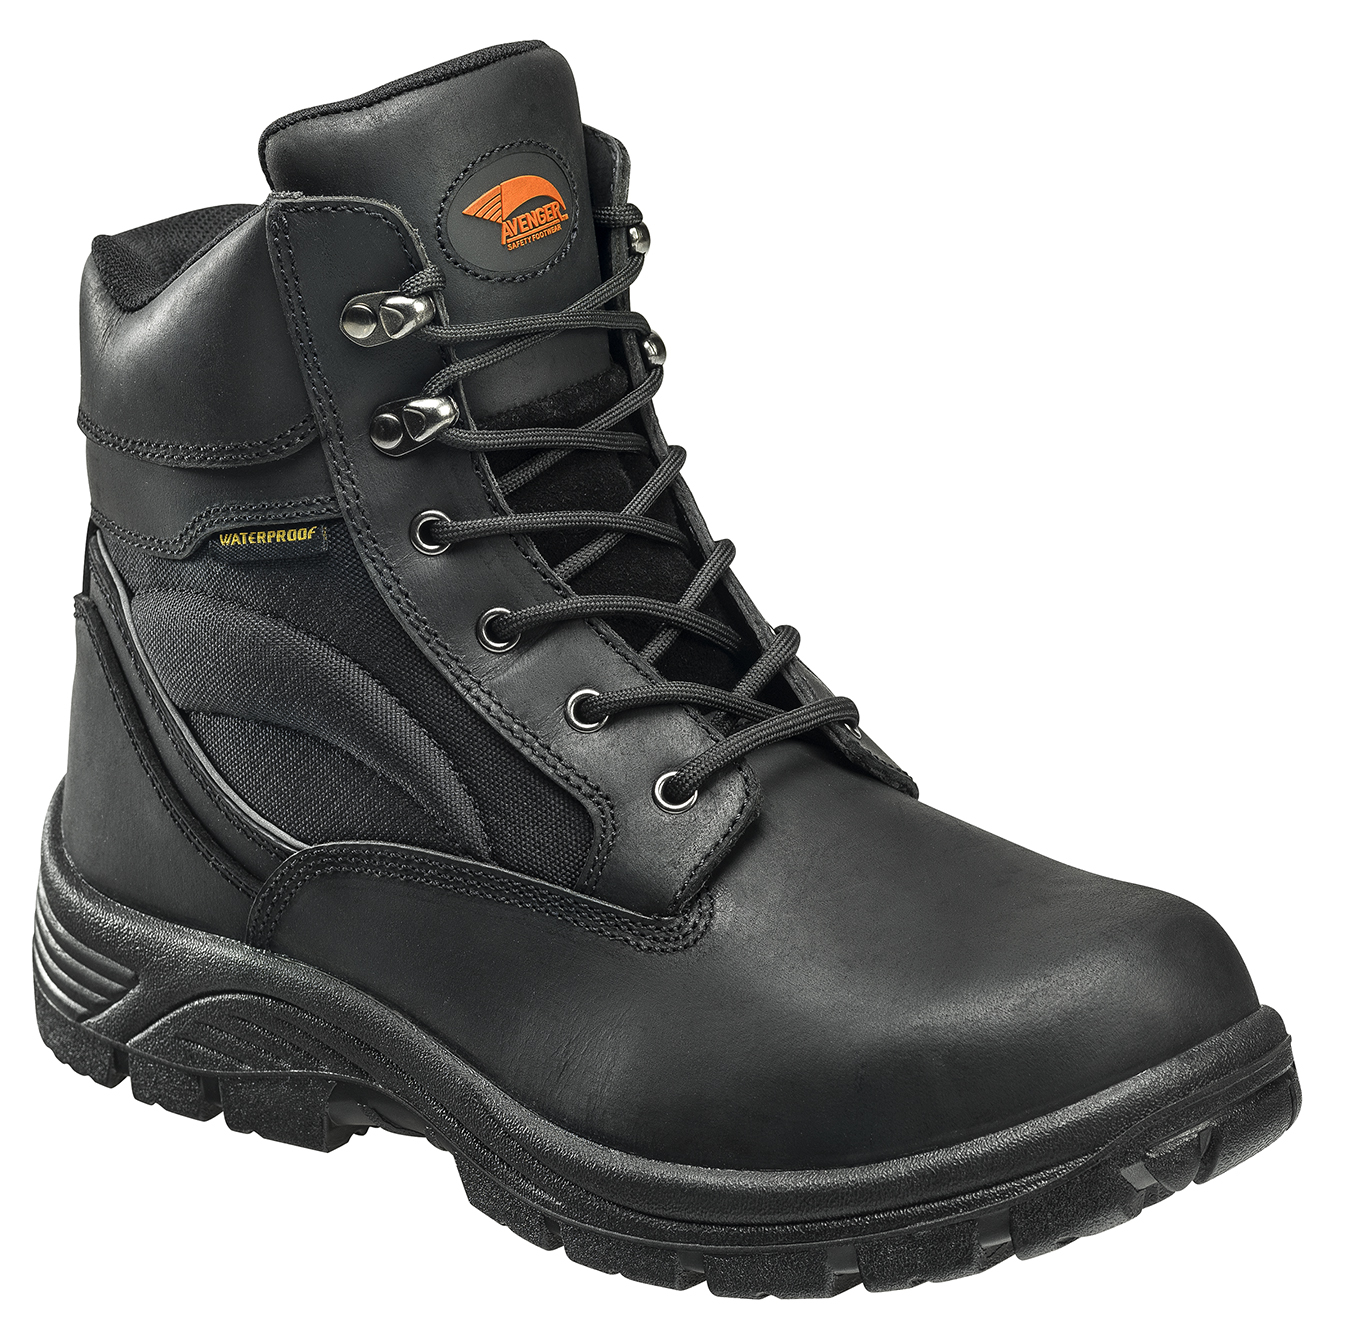 "Avenger Men's 7227 6"" Leather and Cordura EH Waterproof Slip Resistant Safety Toe Work Boot"